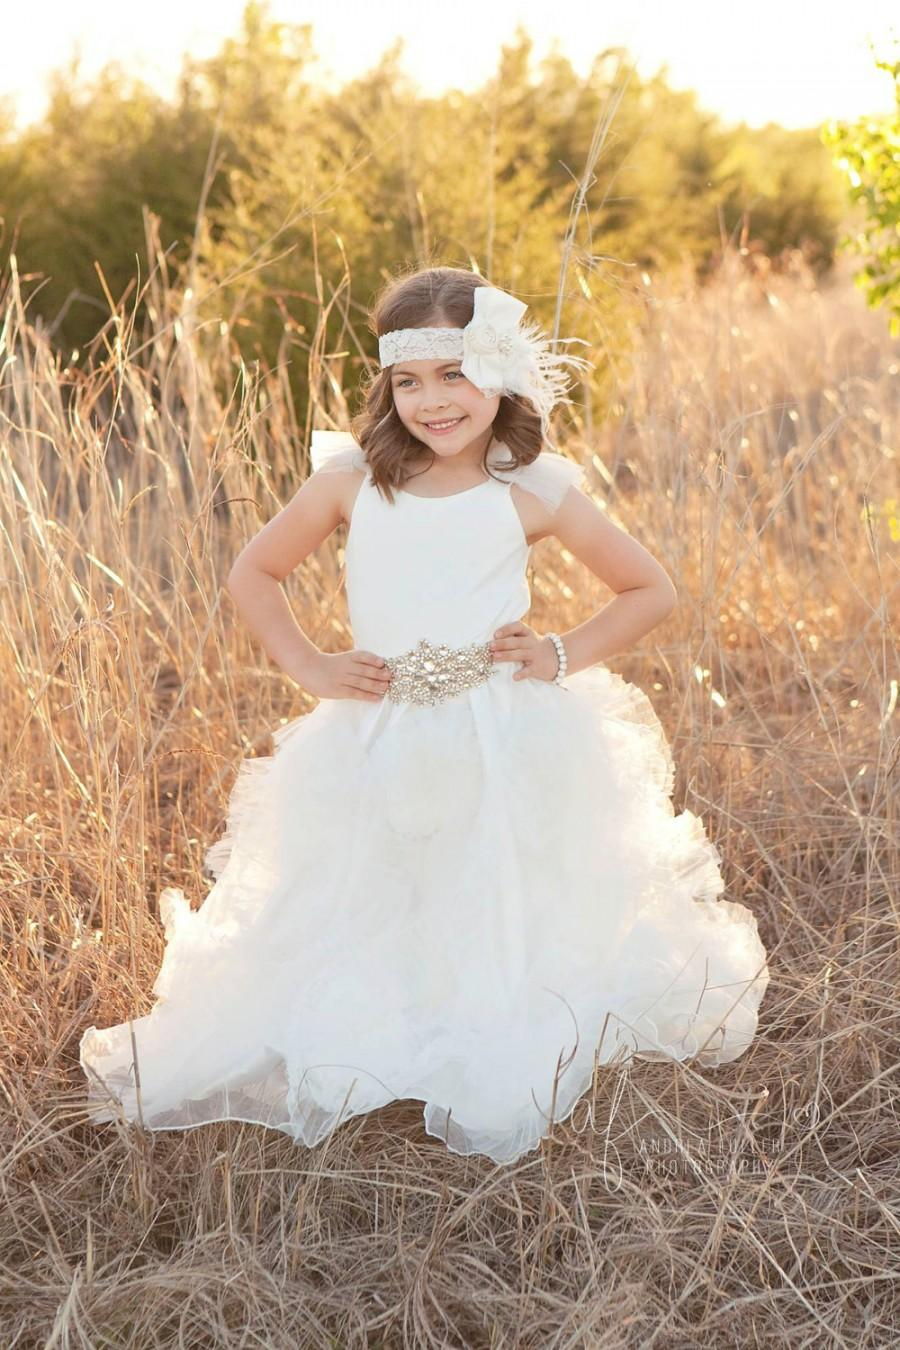 Hochzeit - White Flower girl dress, flower girl dresses, white tutu dress, flower girl dress, gown, baptism gown, white girl dress, vintage flower girl